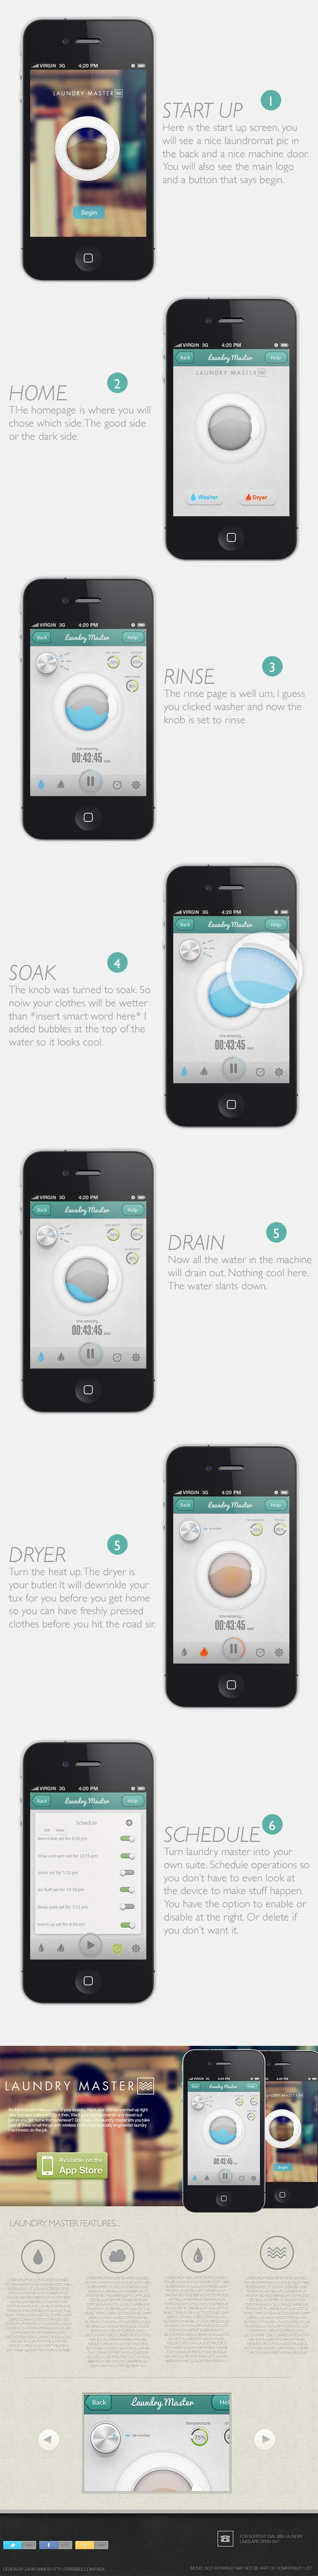 Laundry Master App for iOS.